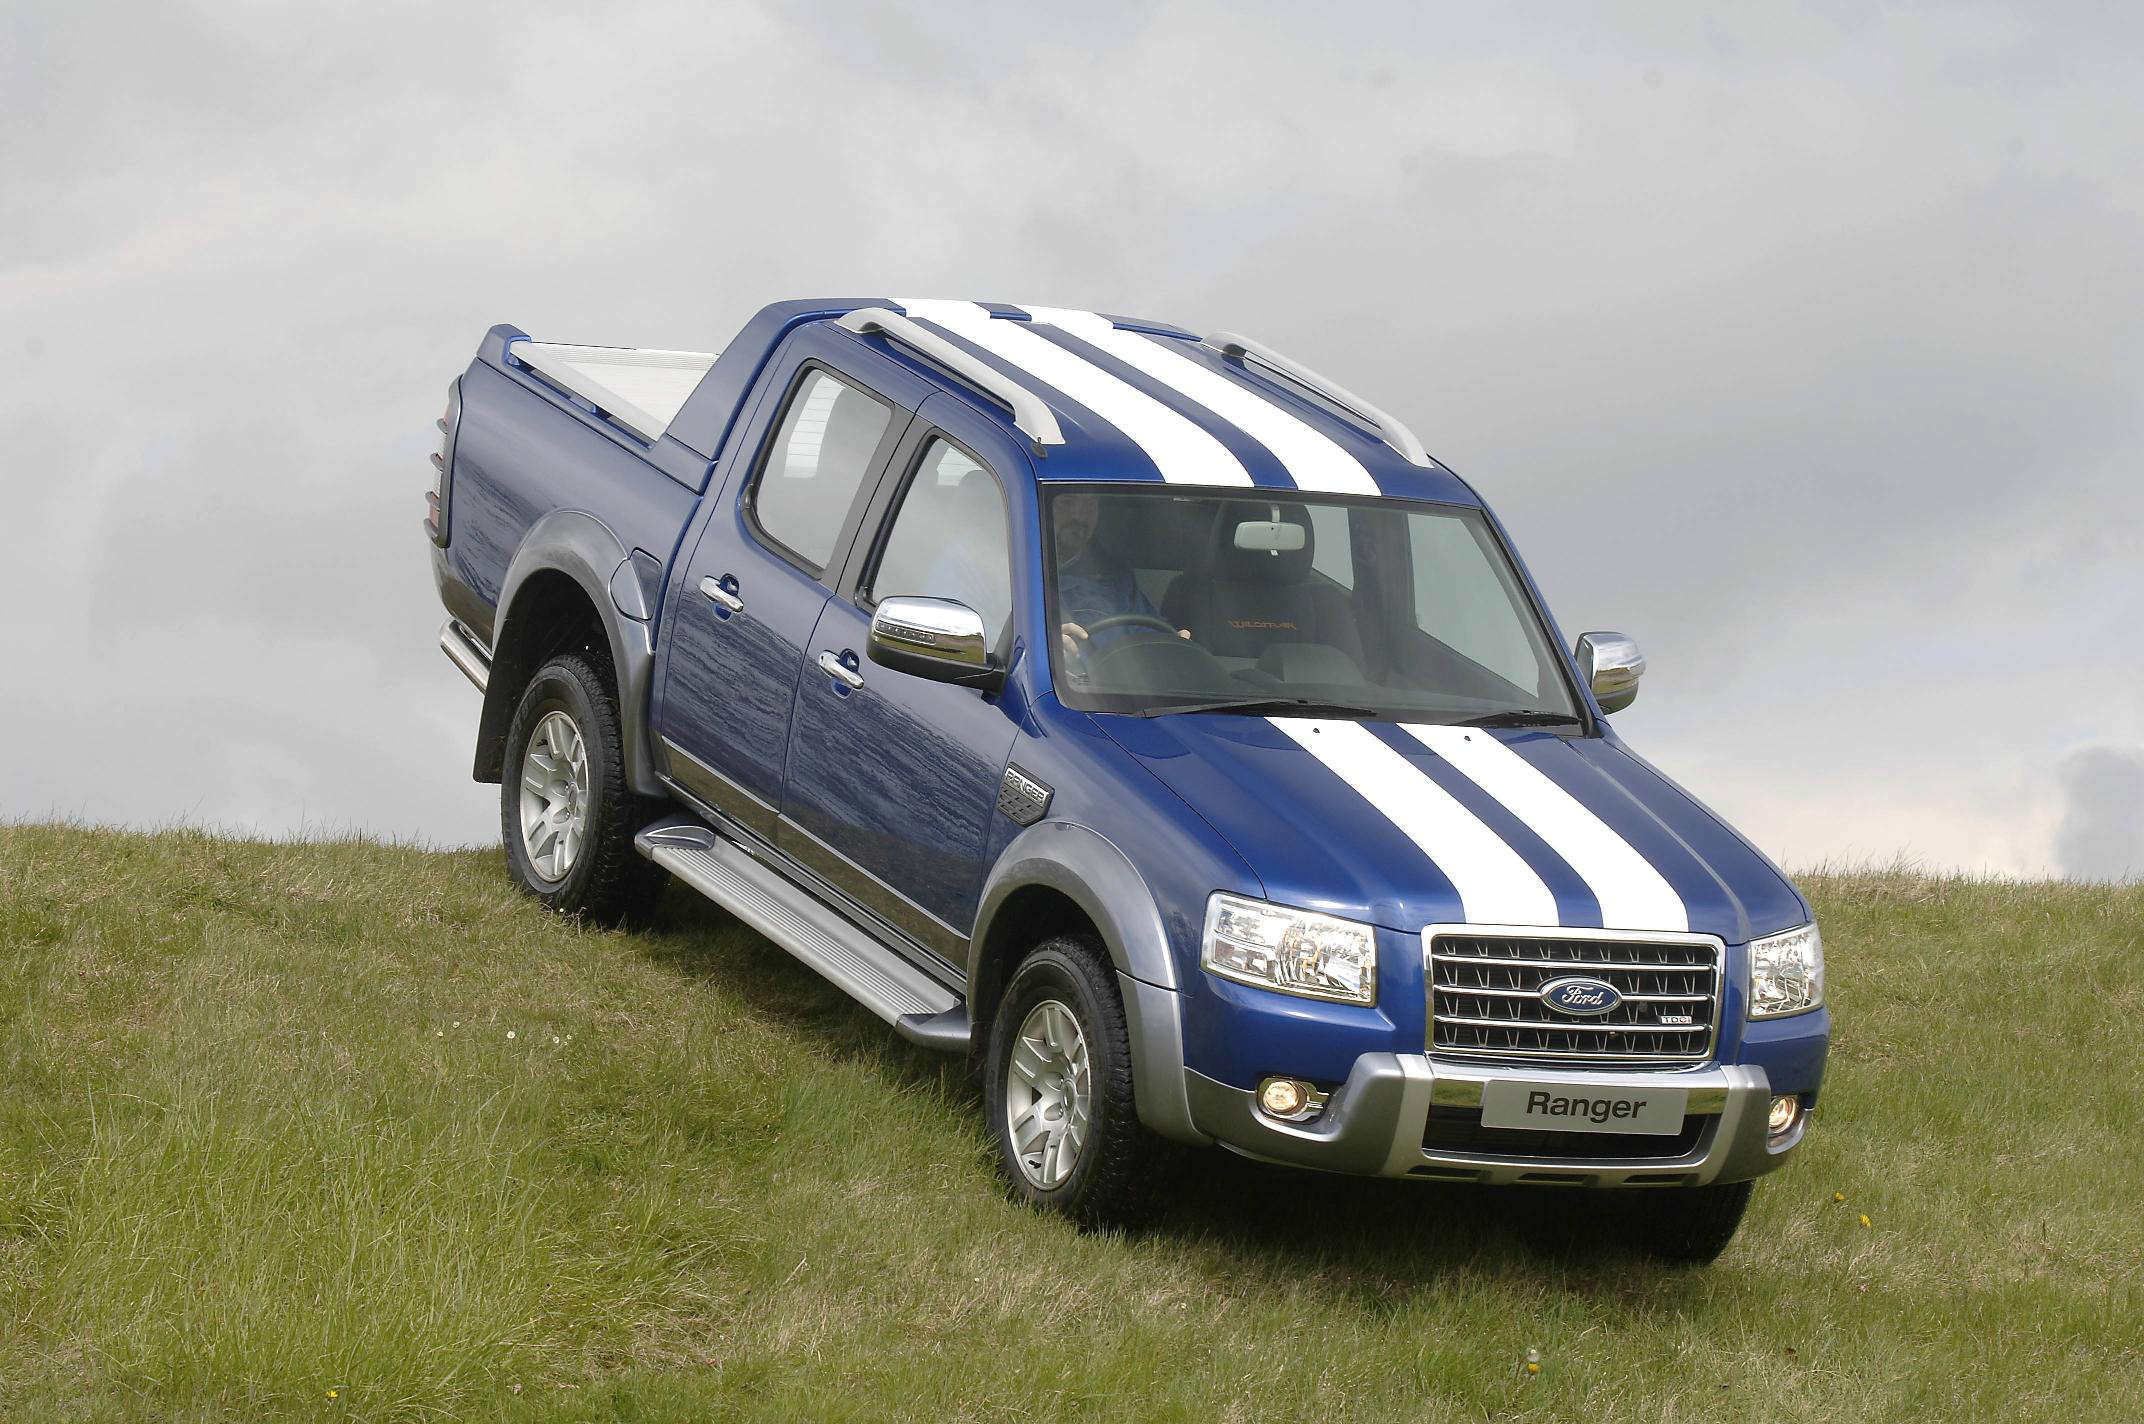 image of a blue and white for ranger car on a hill